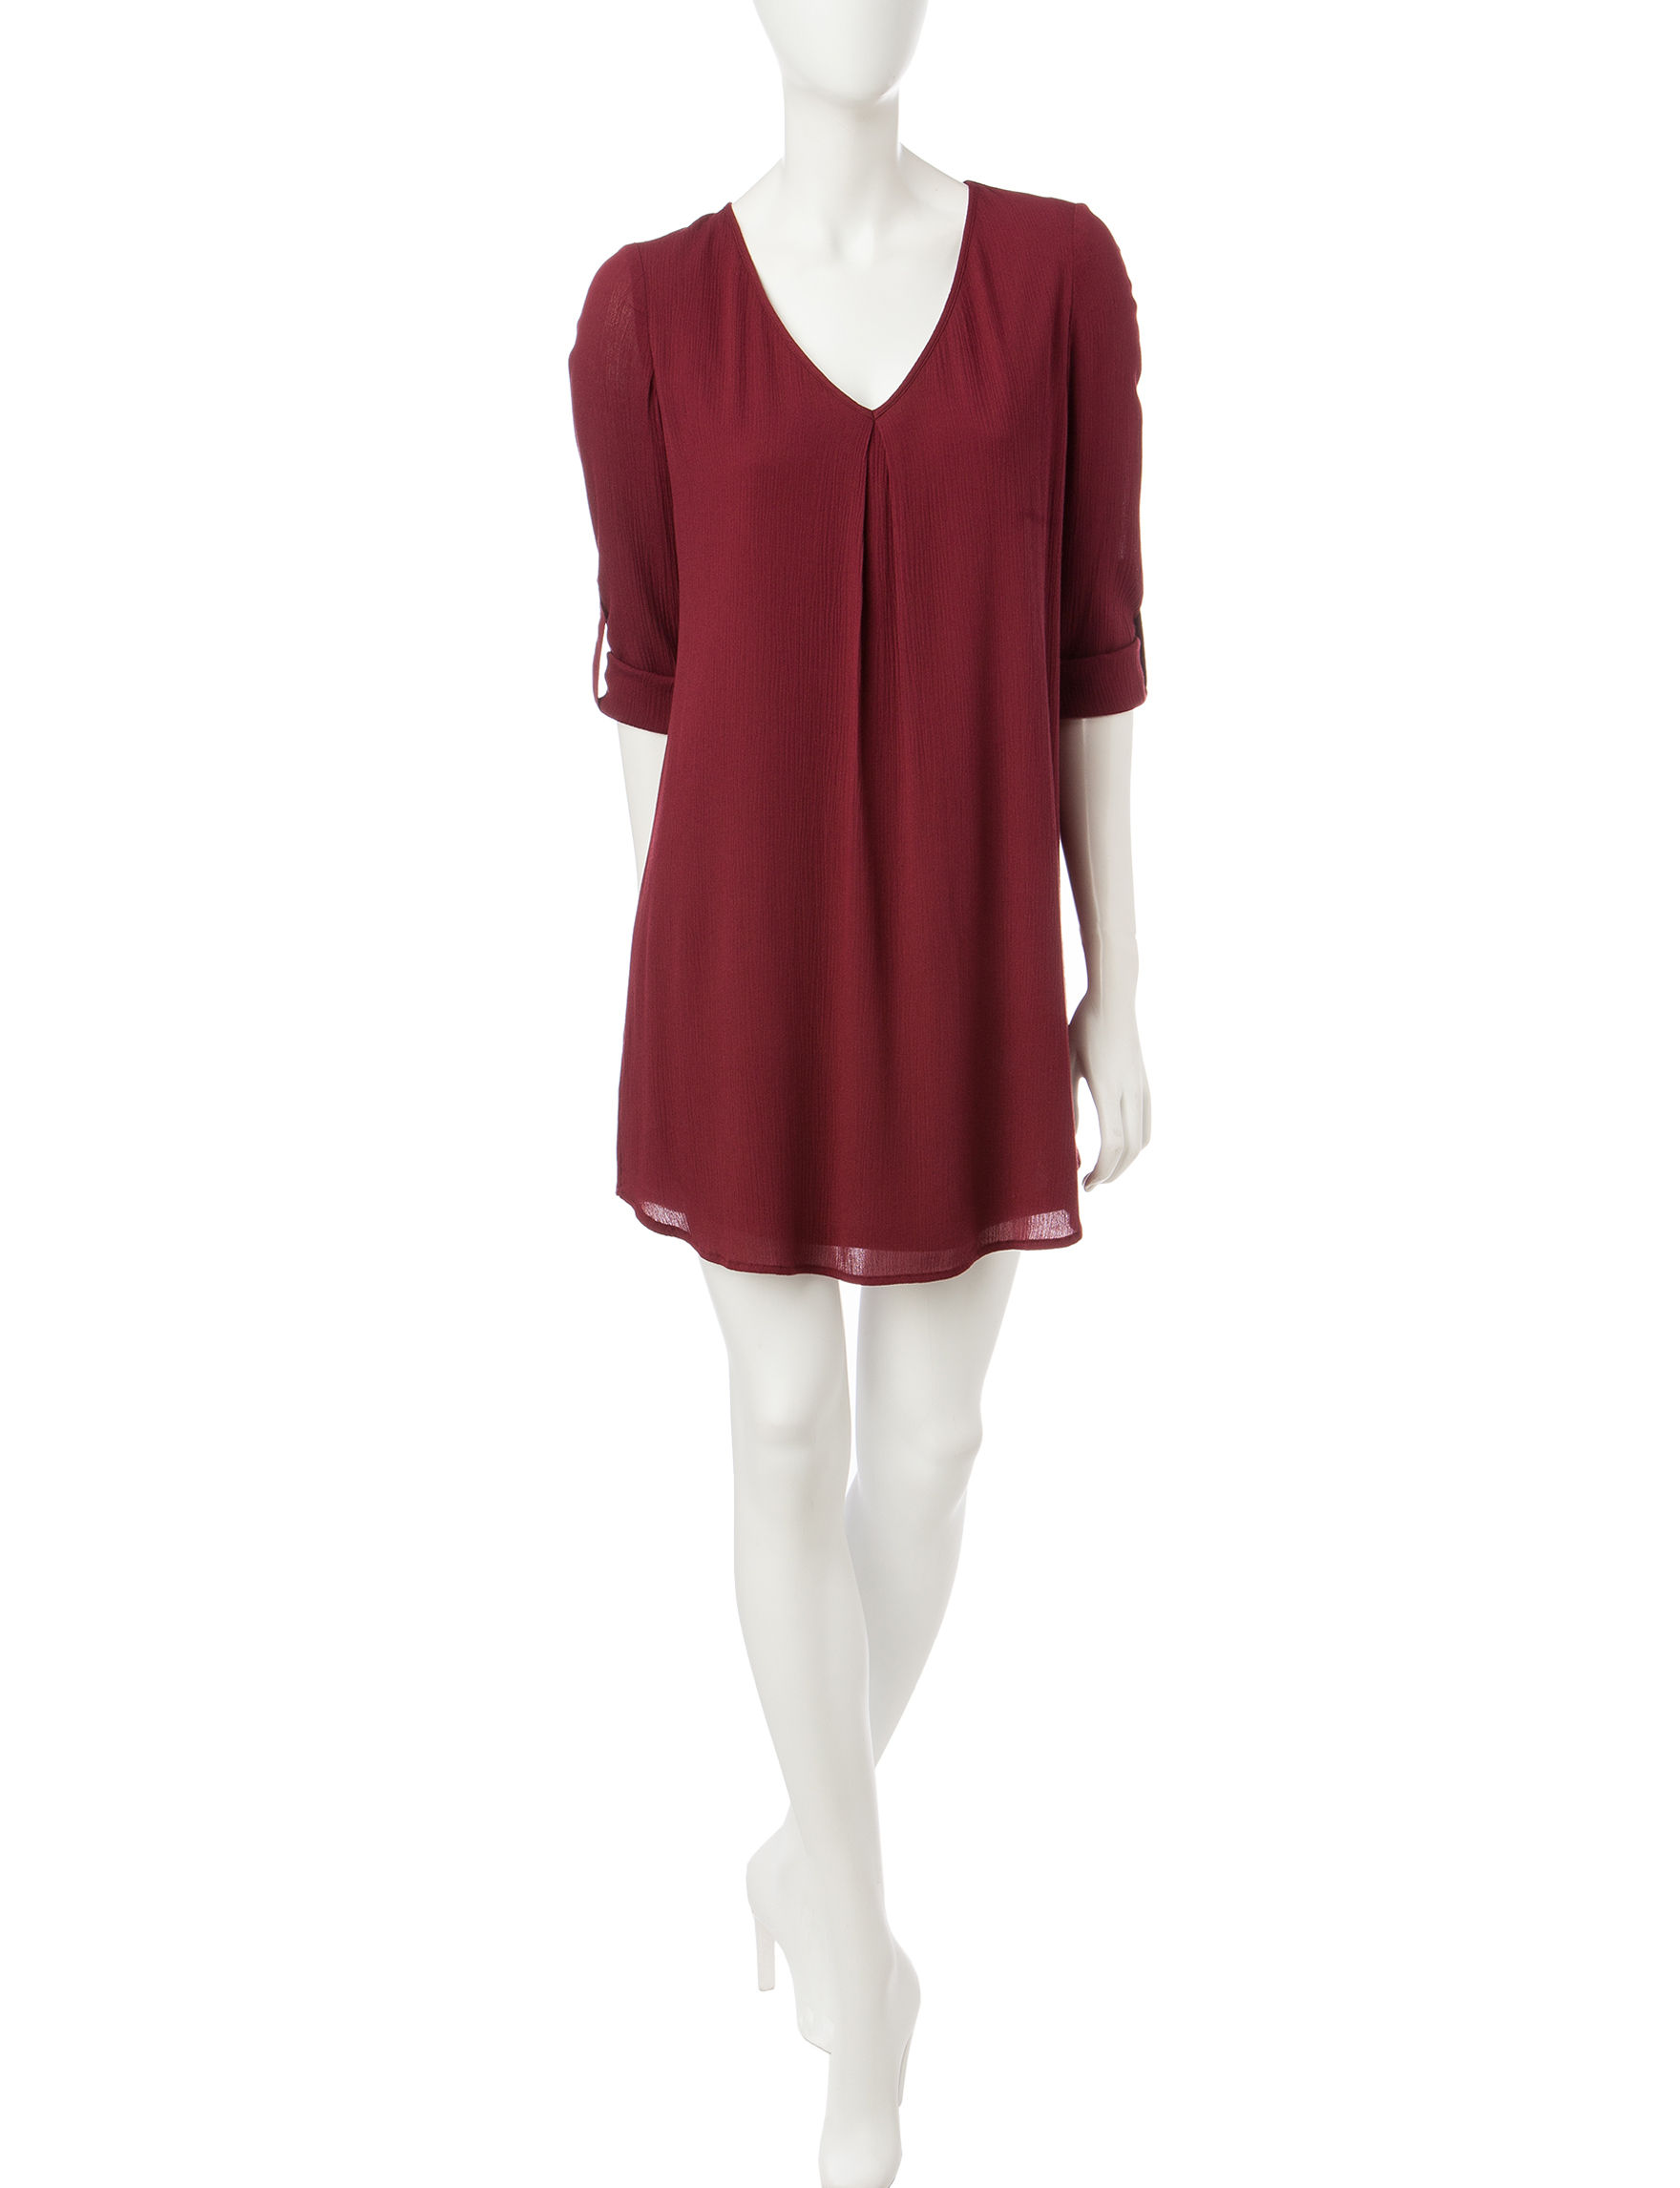 Love Fire Red Everyday & Casual Shift Dresses